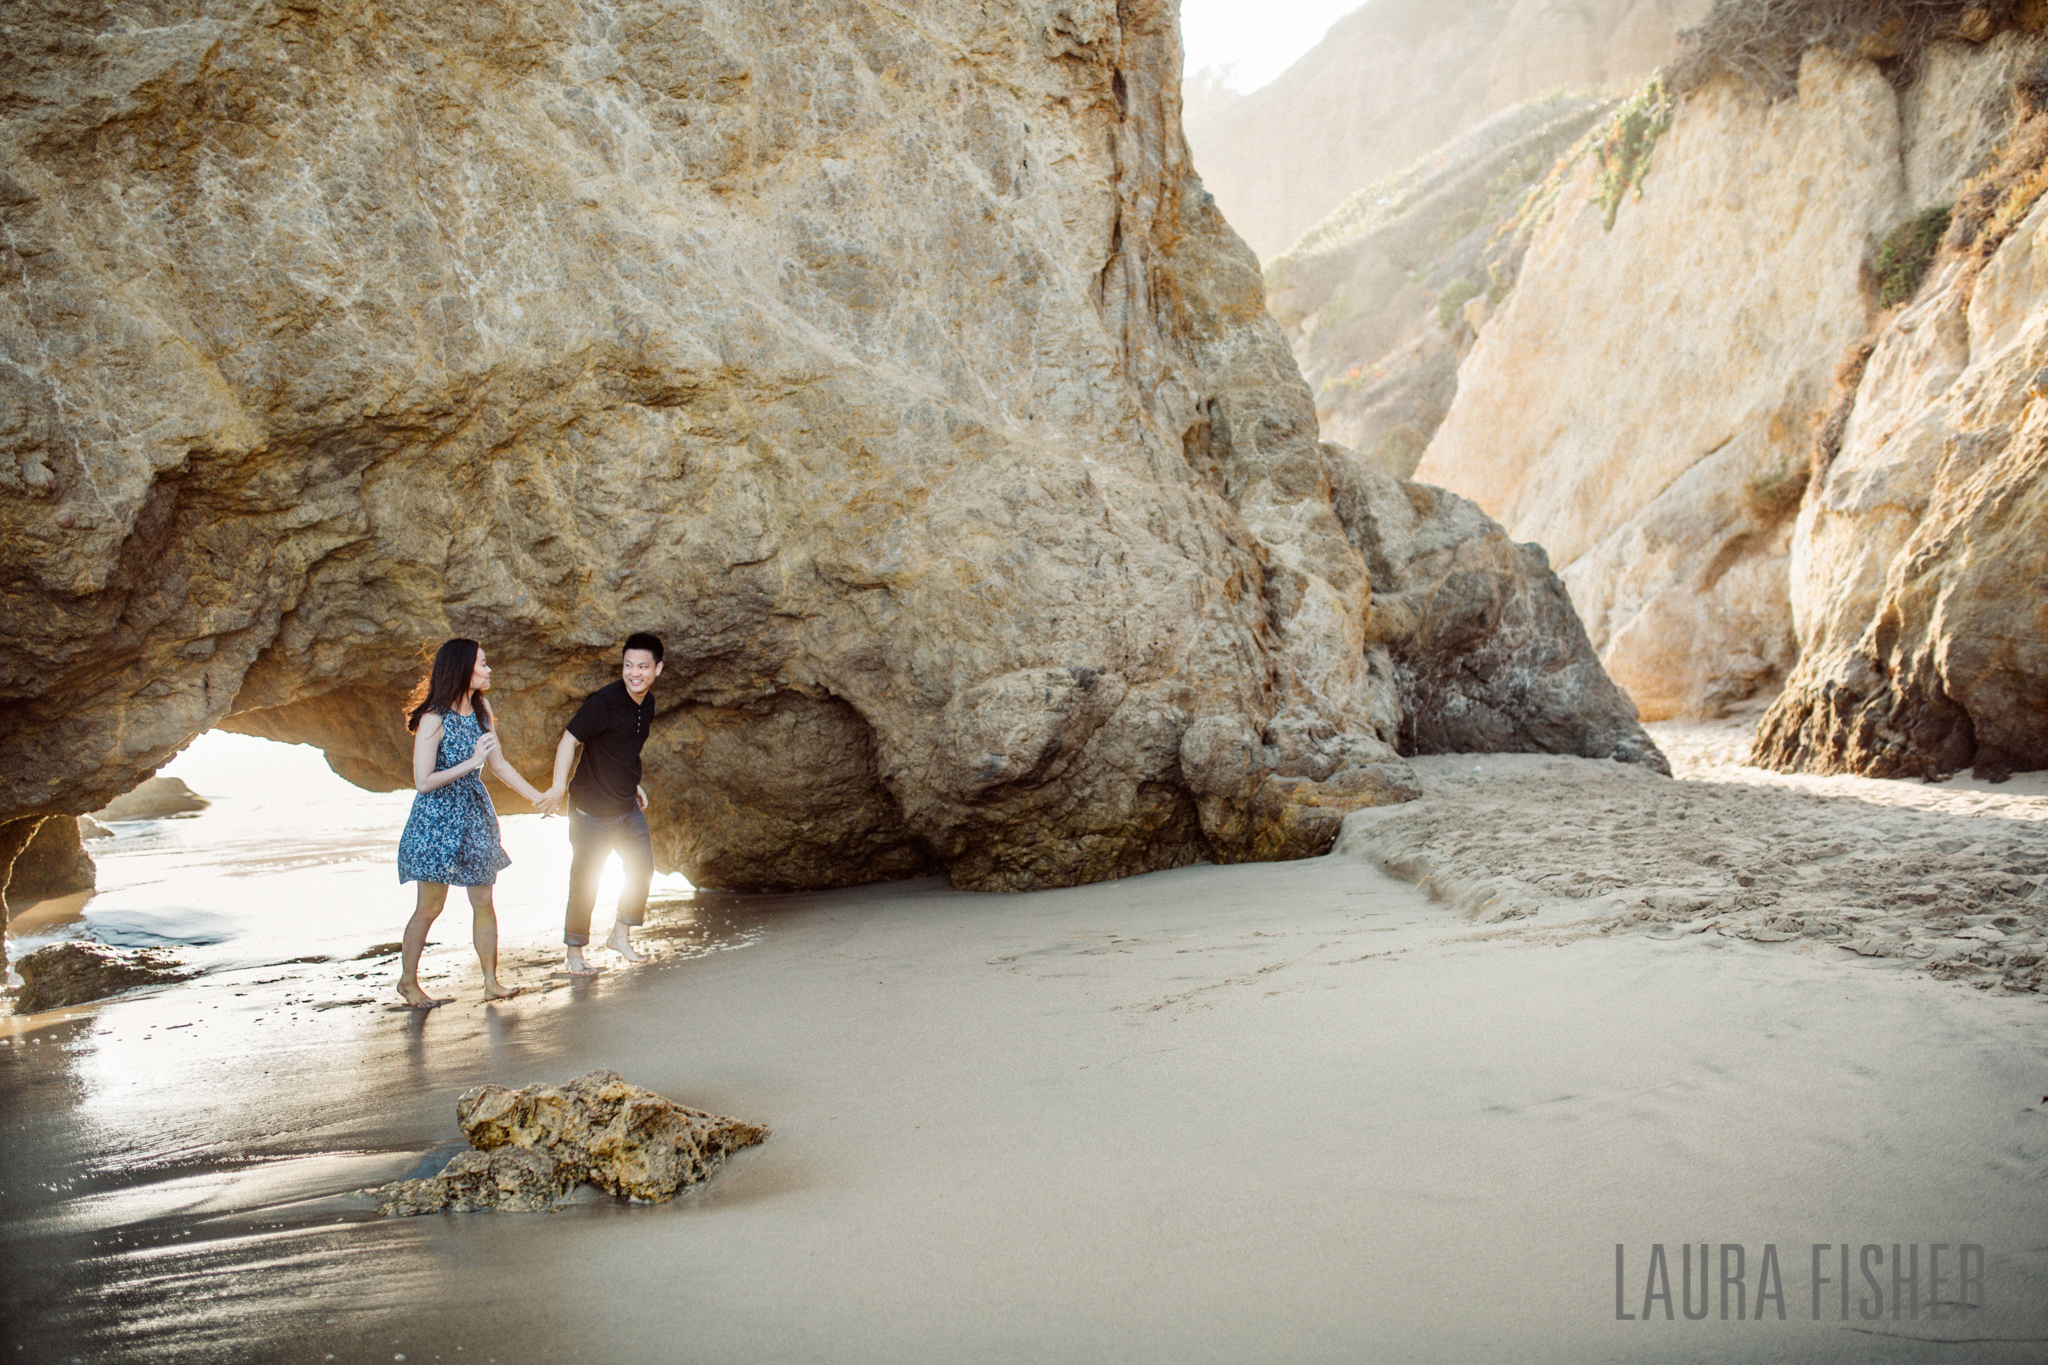 malibu-california-wedding-el-matador-beach-laura-fisher-photography-0036-2.jpg